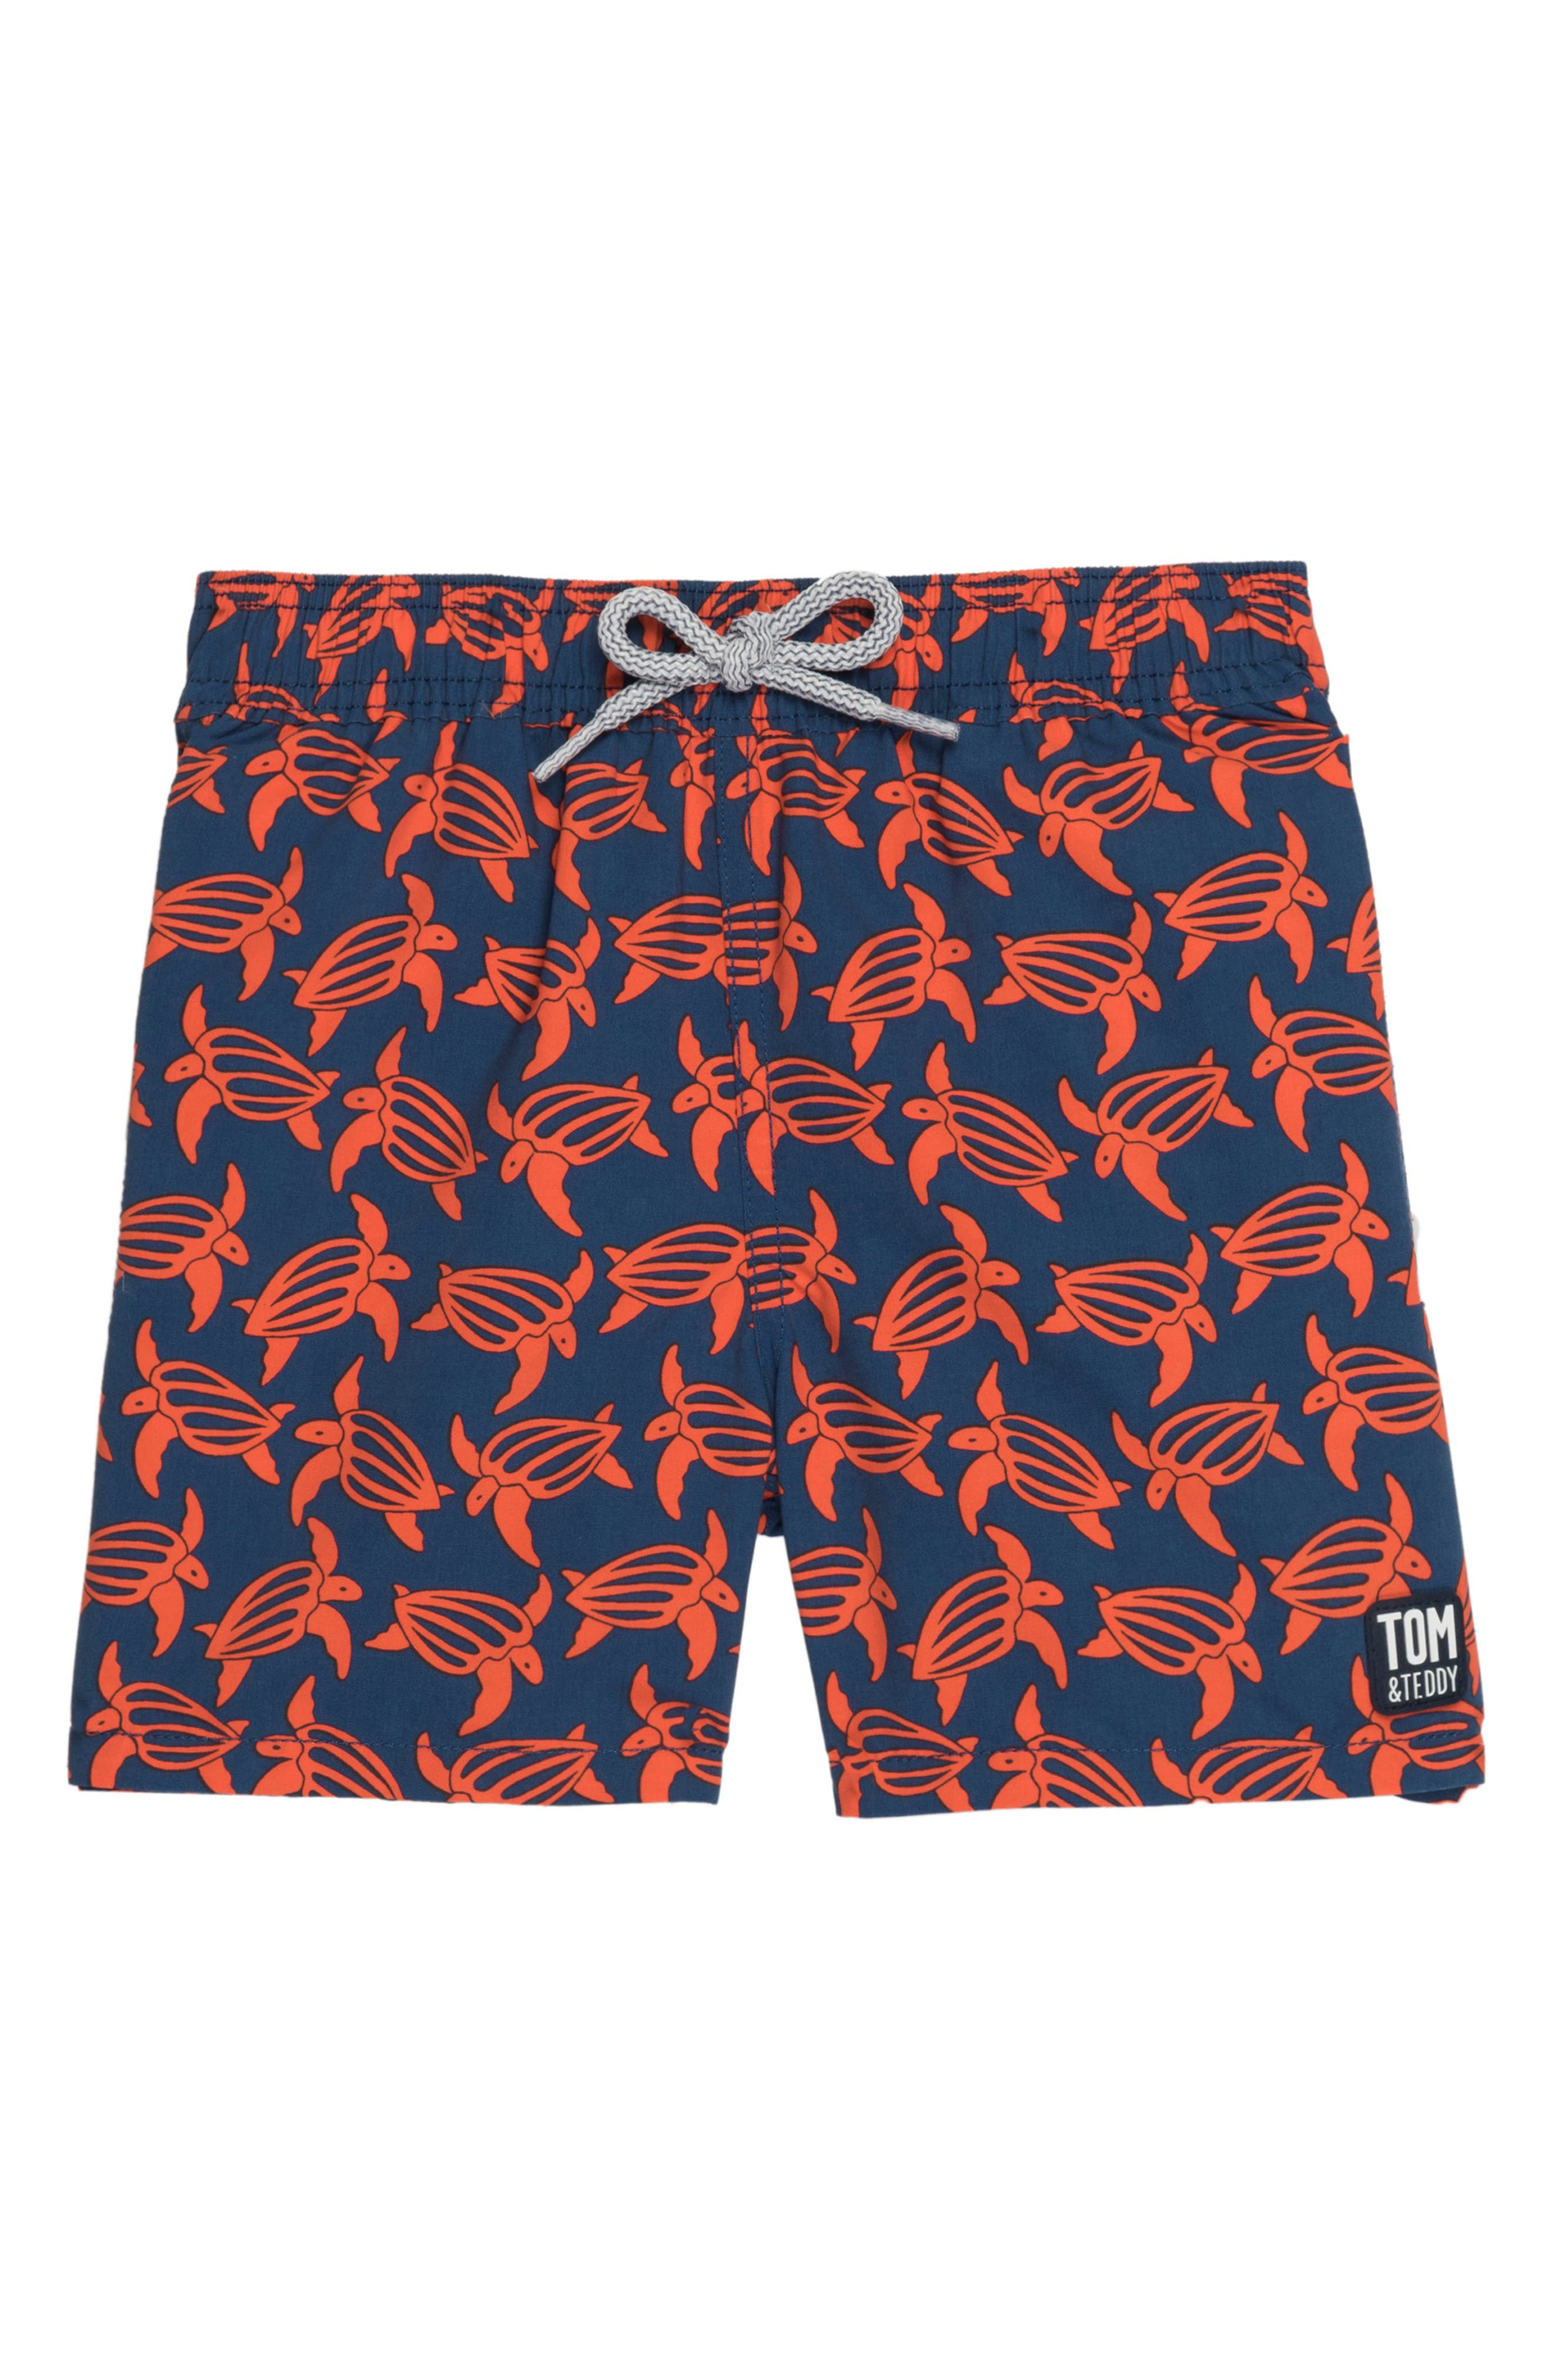 Turtle Swim Trunks,                         Main,                         color, NAVY/ ORANGE